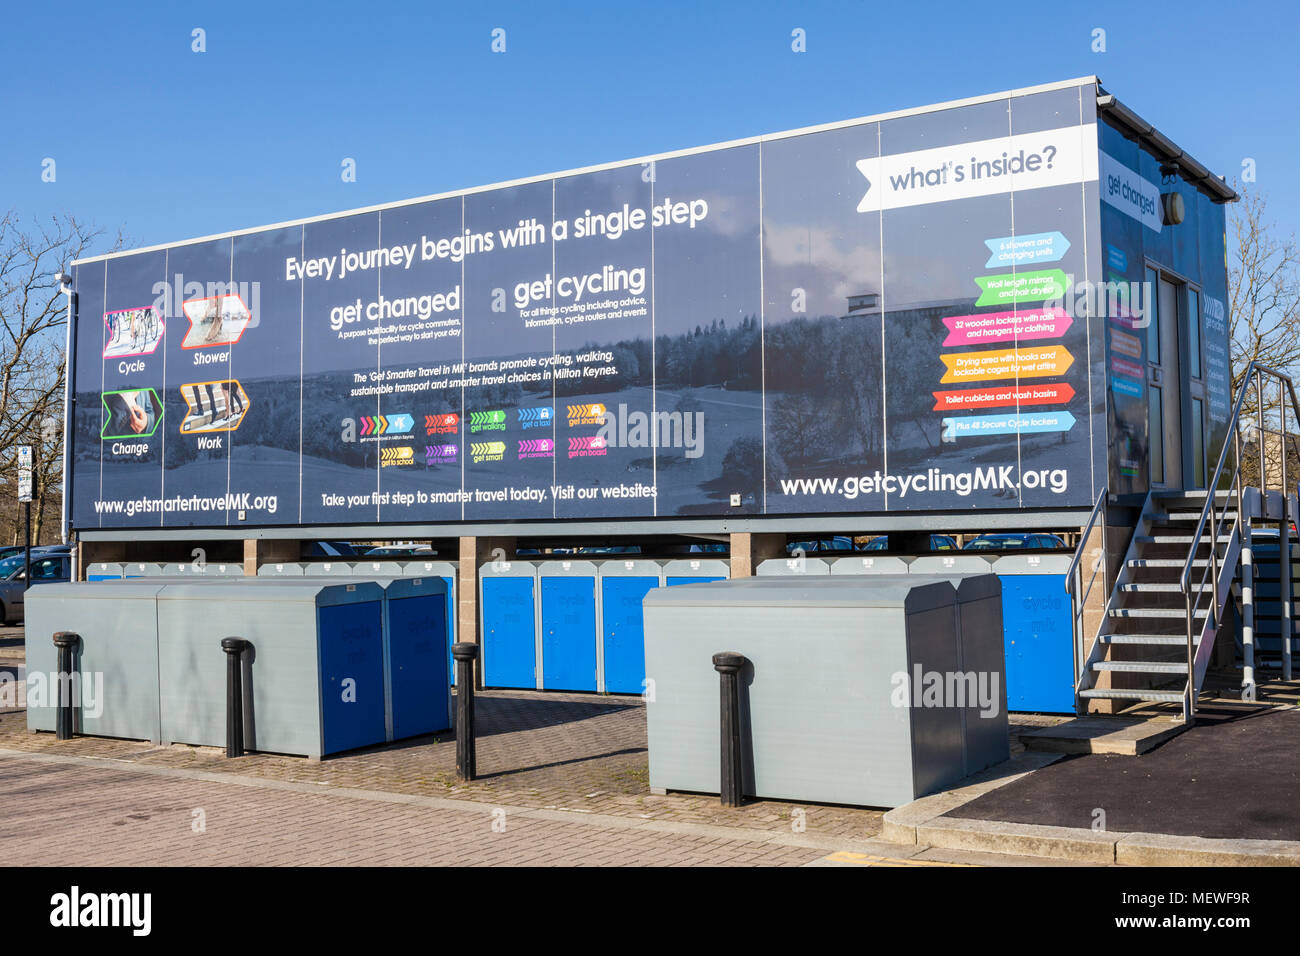 Milton Keynes England showers and changing facilities for commuting cyclists in central milton keynes buckinghamshire england gb uk europe - Stock Image